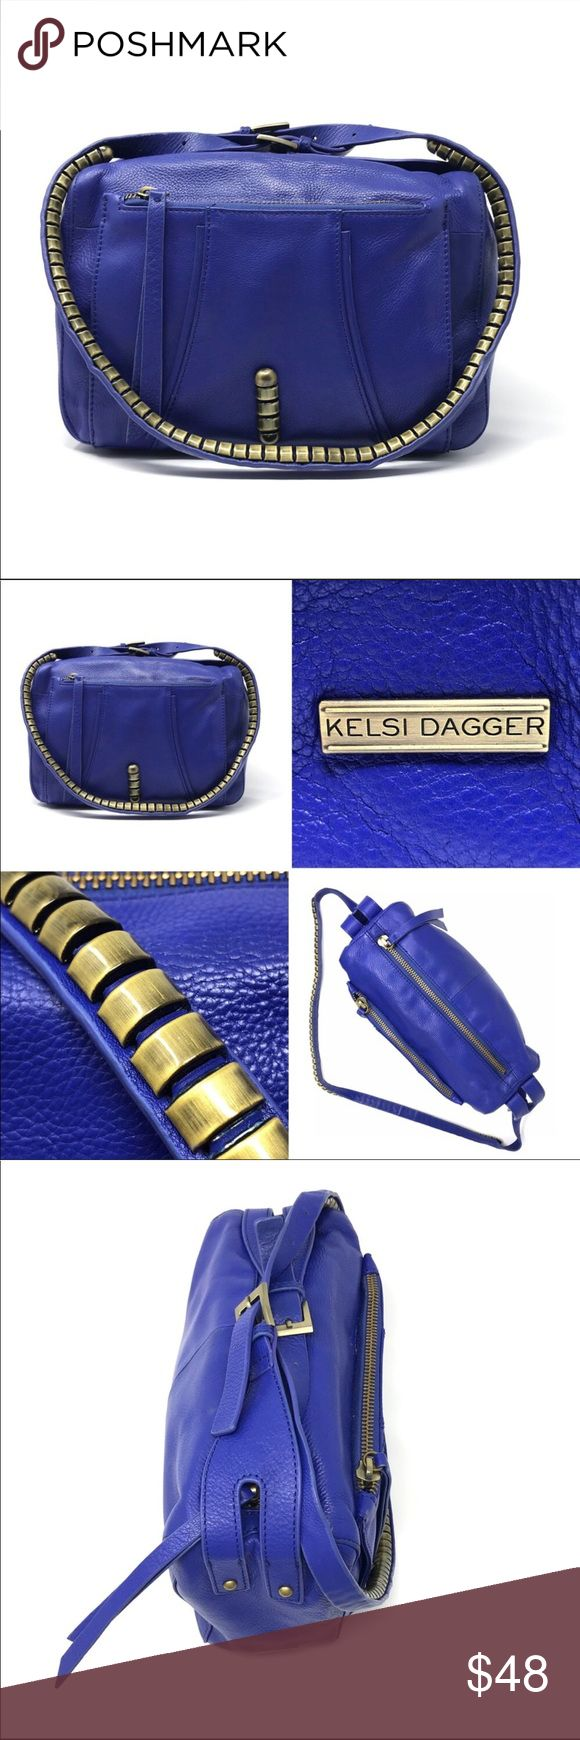 """Kelsi Dagger crossbody Purchased from a fellow seller on Poshmark.  I love the vibrant color and beautiful studded details on this bag. Unfortunately, I didn't pay attention to the size and it's a wittle big for my liking. Willing to accept any reasonable offer. Thanks 💙  SIZE : 11""""W by 9.5"""" H by 4 D Kelsi Dagger Bags Crossbody Bags"""